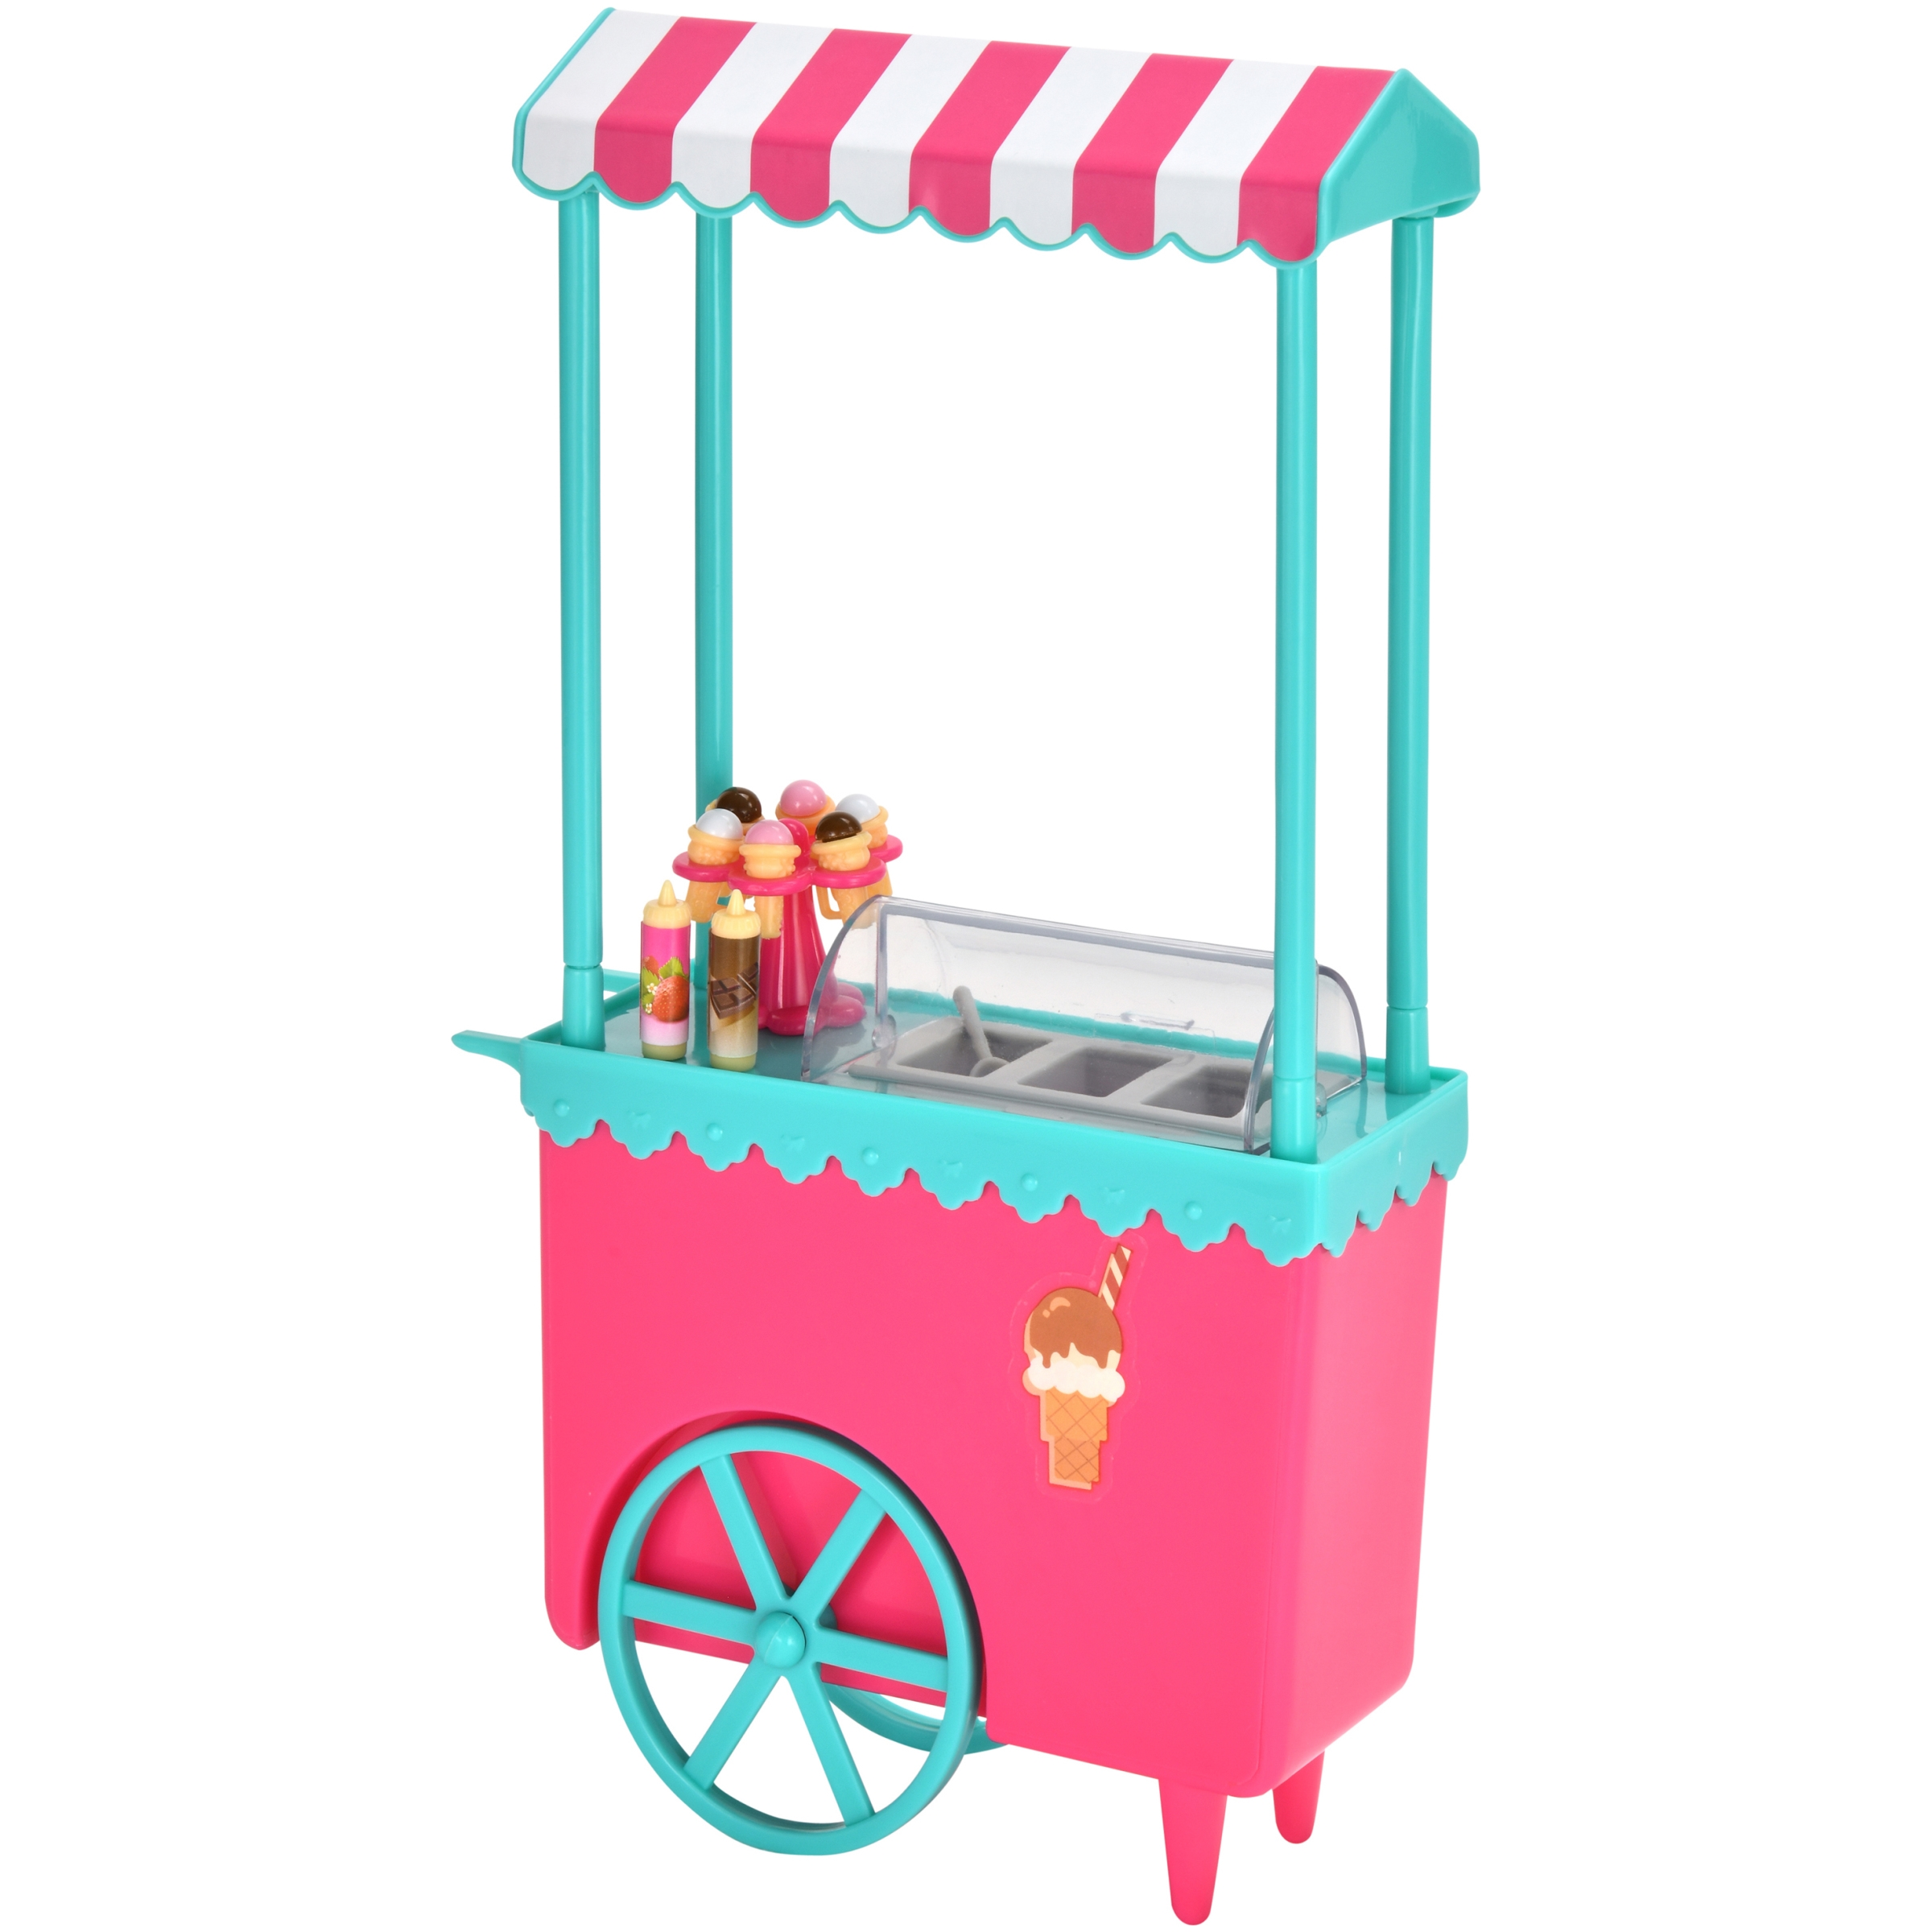 Kid Connection 19-Piece Ice Cream Stand Play Set